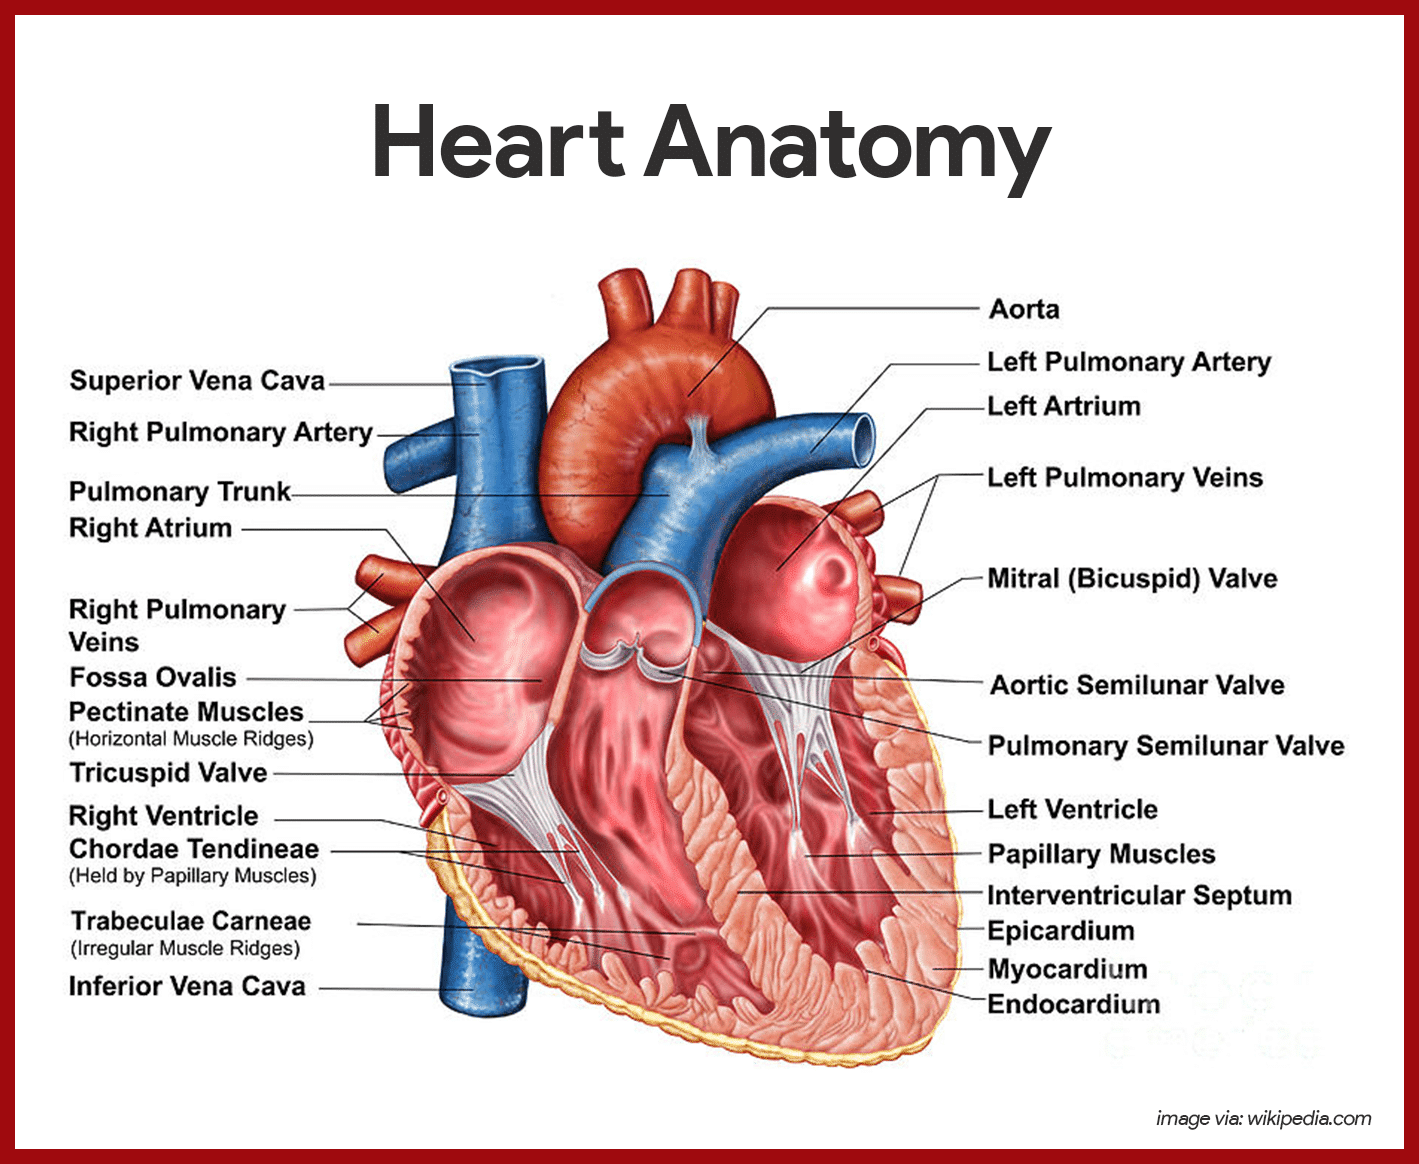 Human anatomy dissection guide pdf